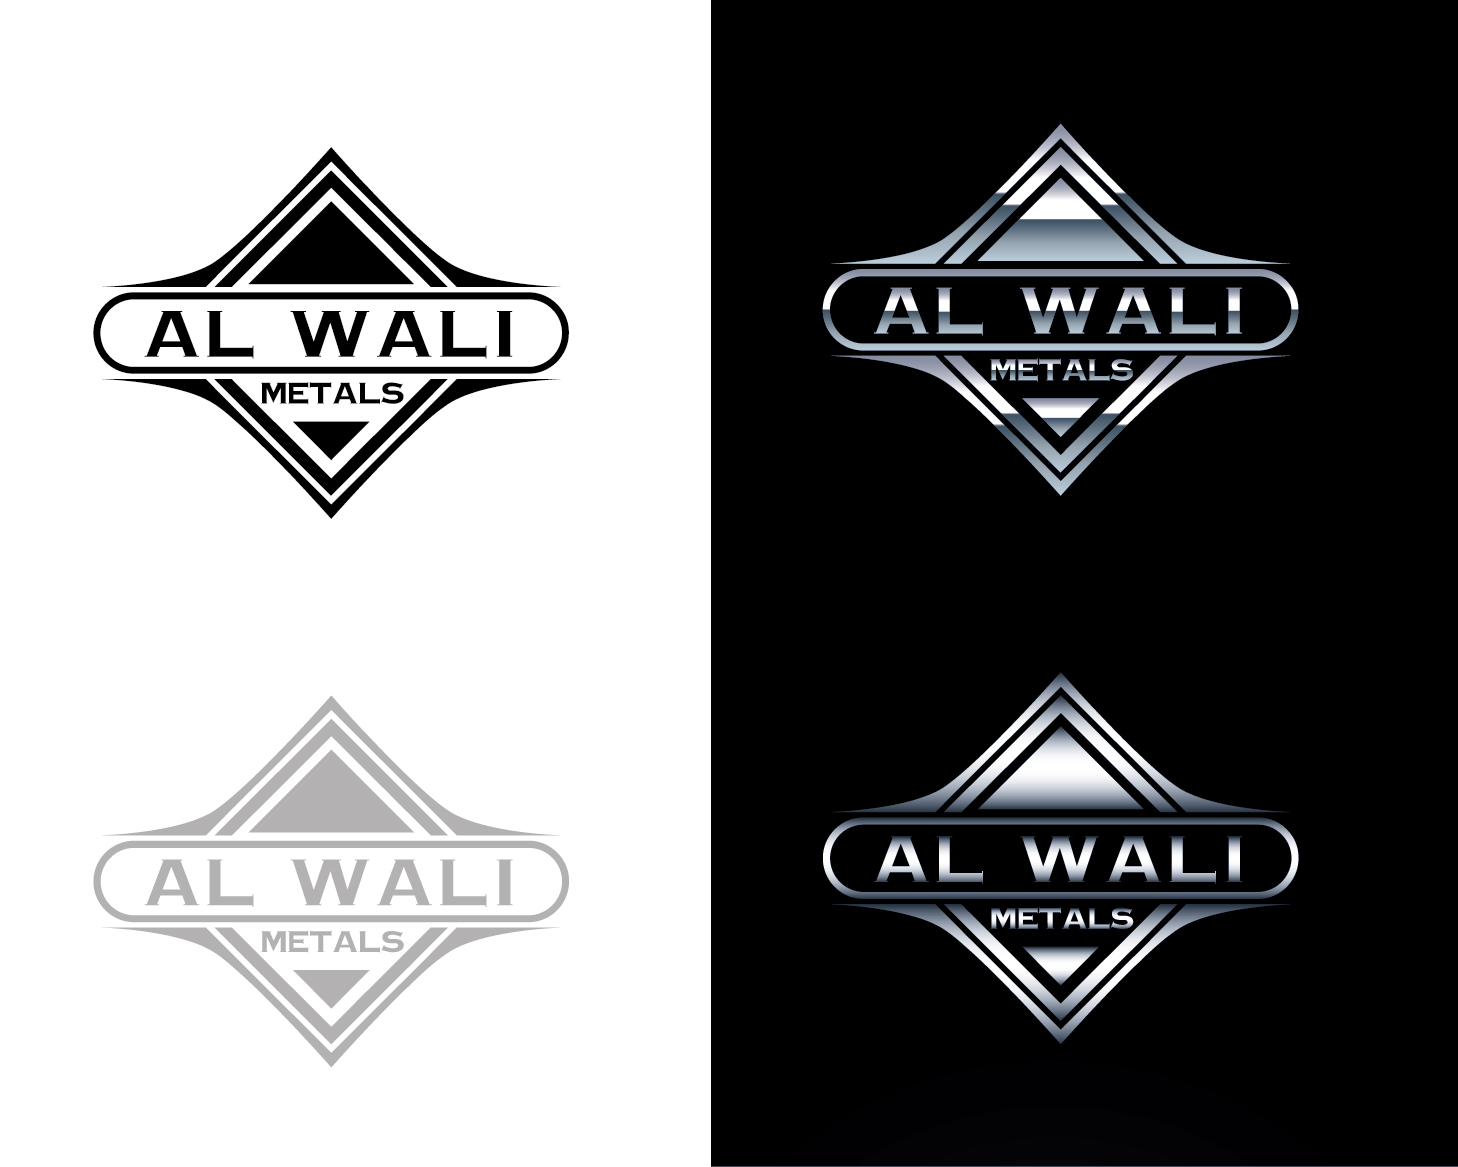 Logo Design by VENTSISLAV KOVACHEV - Entry No. 94 in the Logo Design Contest Inspiring Logo Design for Al Wali Metals.